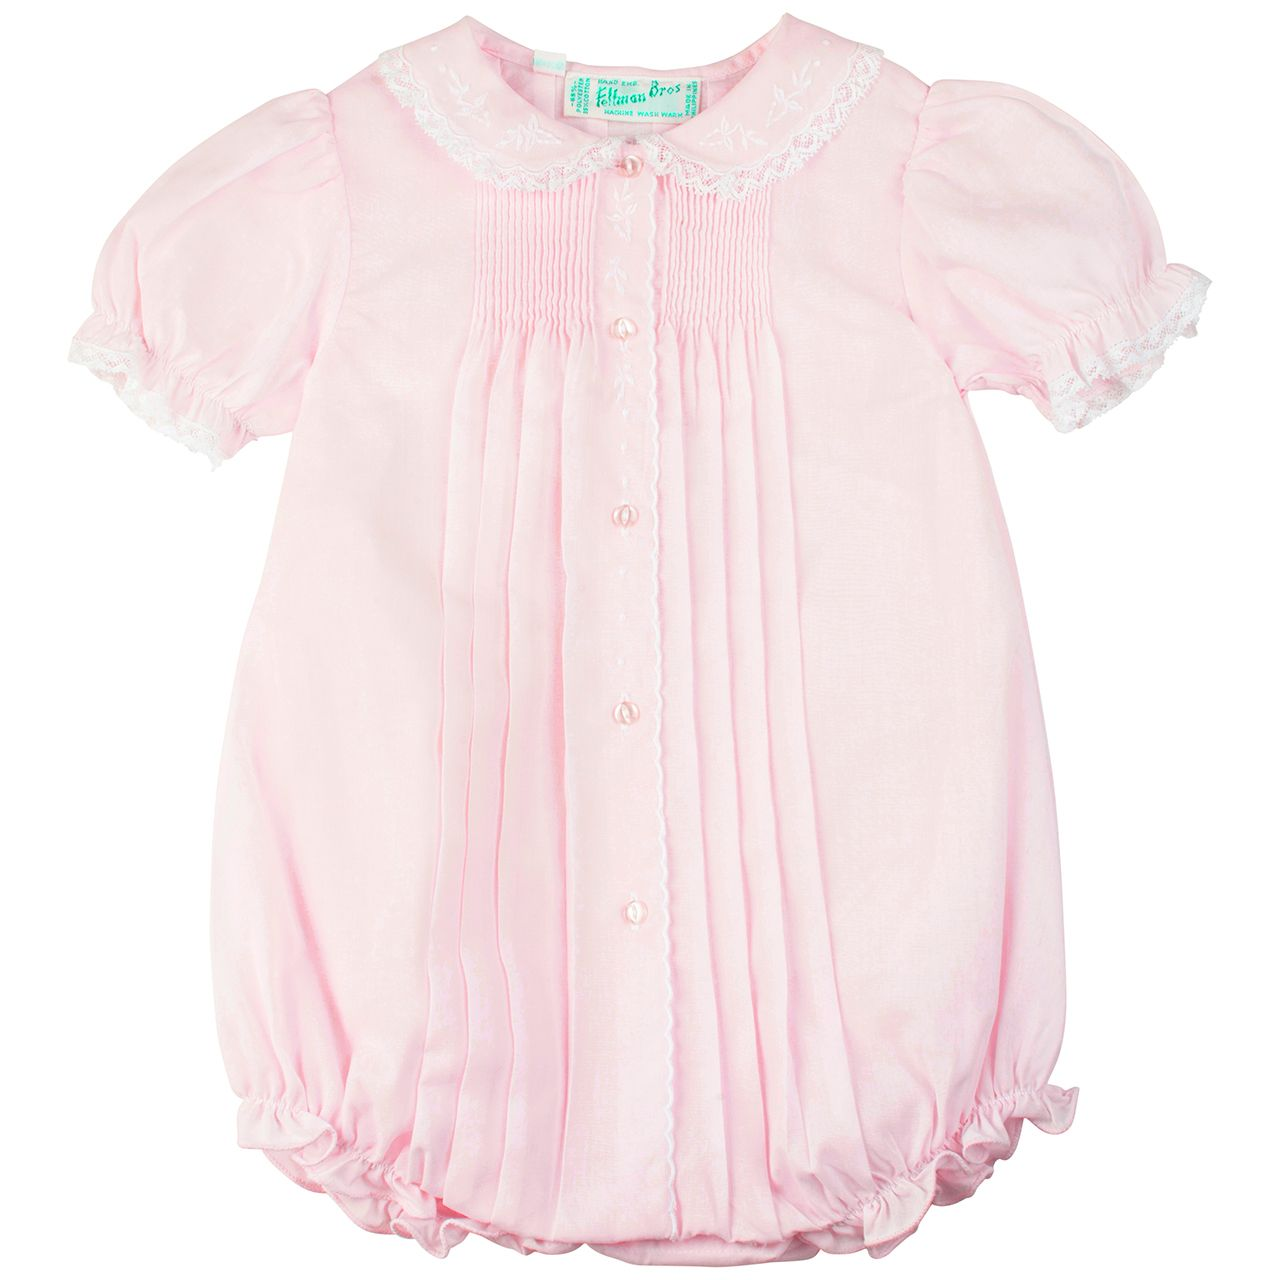 cb91db318b5 Delicate and sweet, baby girl pink short romper bubble. Embellished with  embroidered flowers on collar and along the button front scalloped opening  along ...